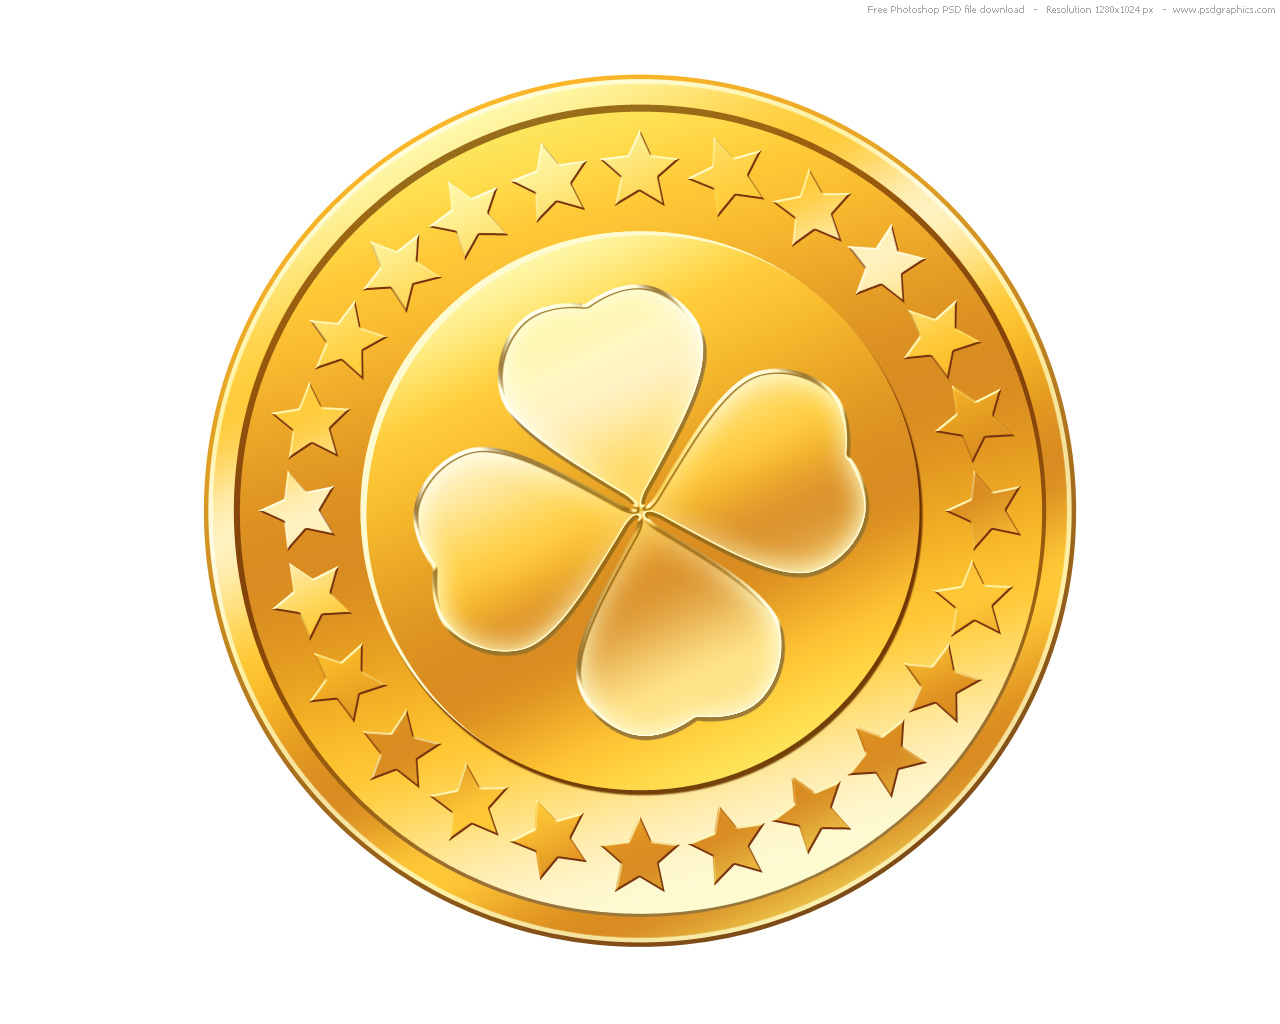 Gold Coin Clipart - Clipart Kid